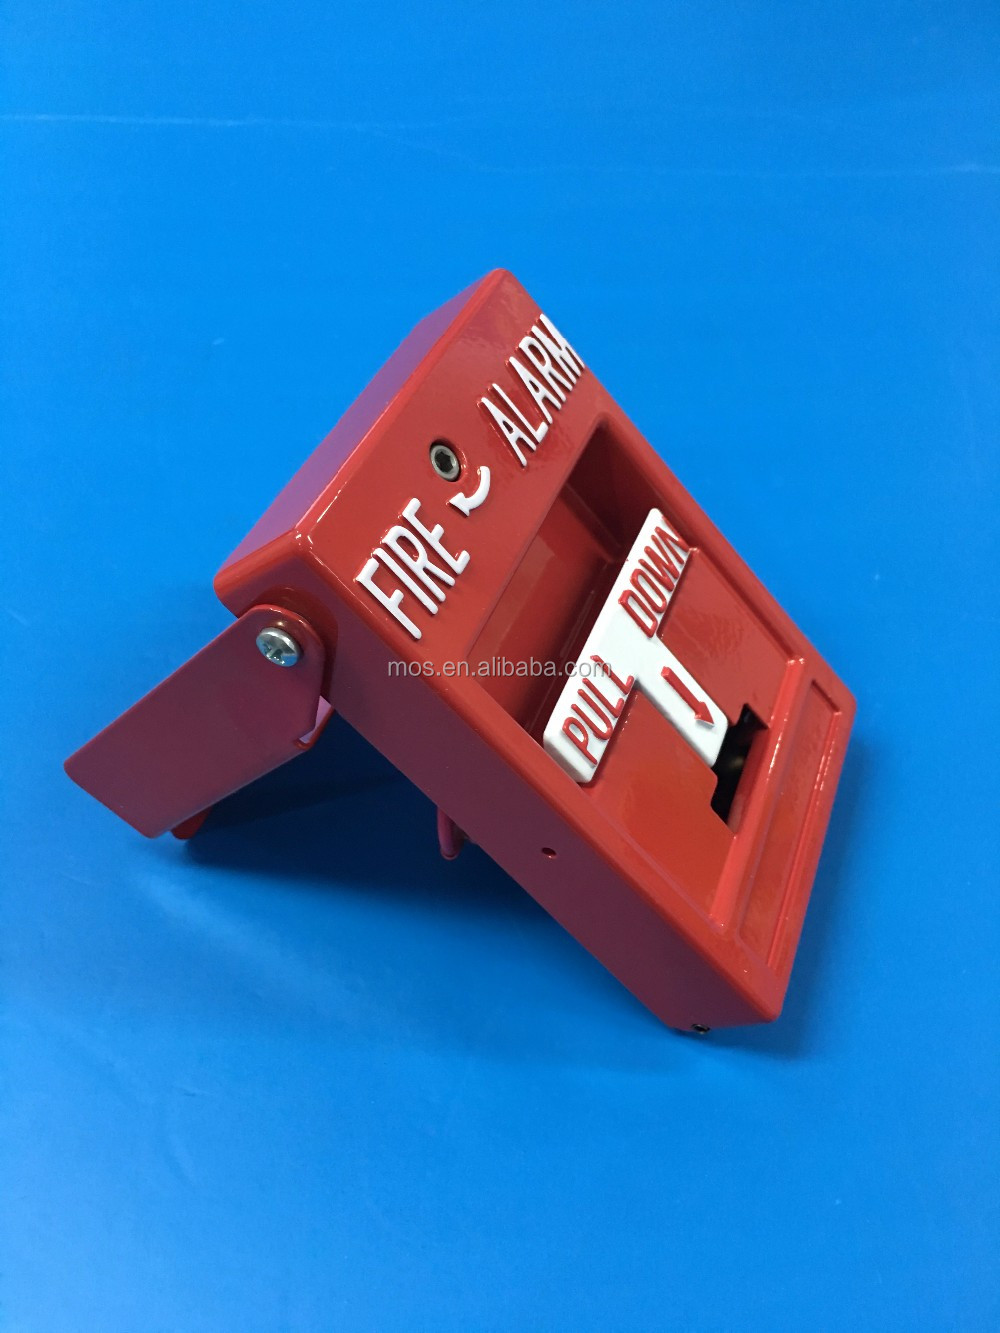 Steel Fire Alarm Control Panel Manual Dual Action Pull Station with Push Bar